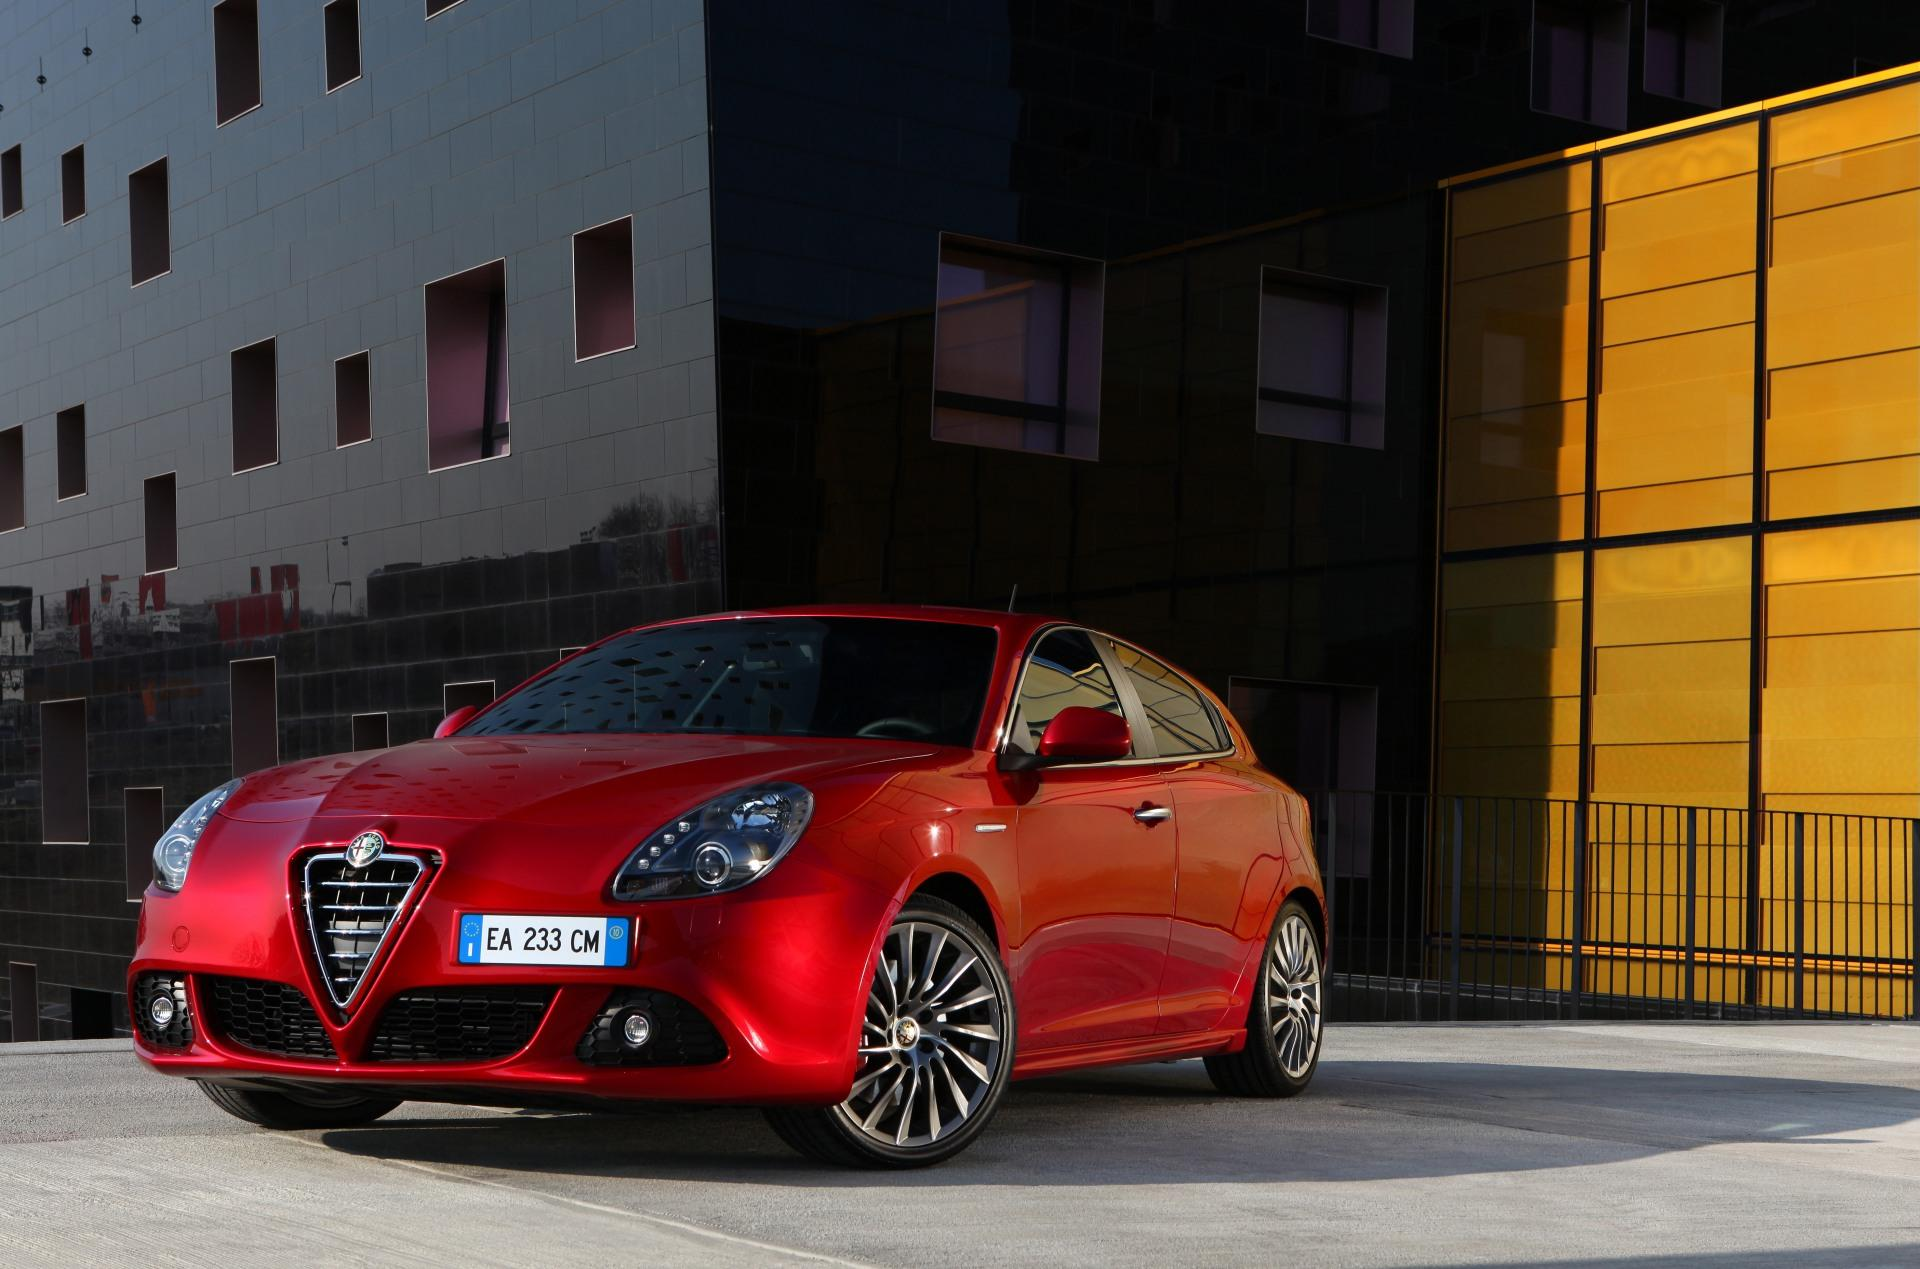 alfa romeo giulietta wallpaper car - HD Desktop Wallpapers ...